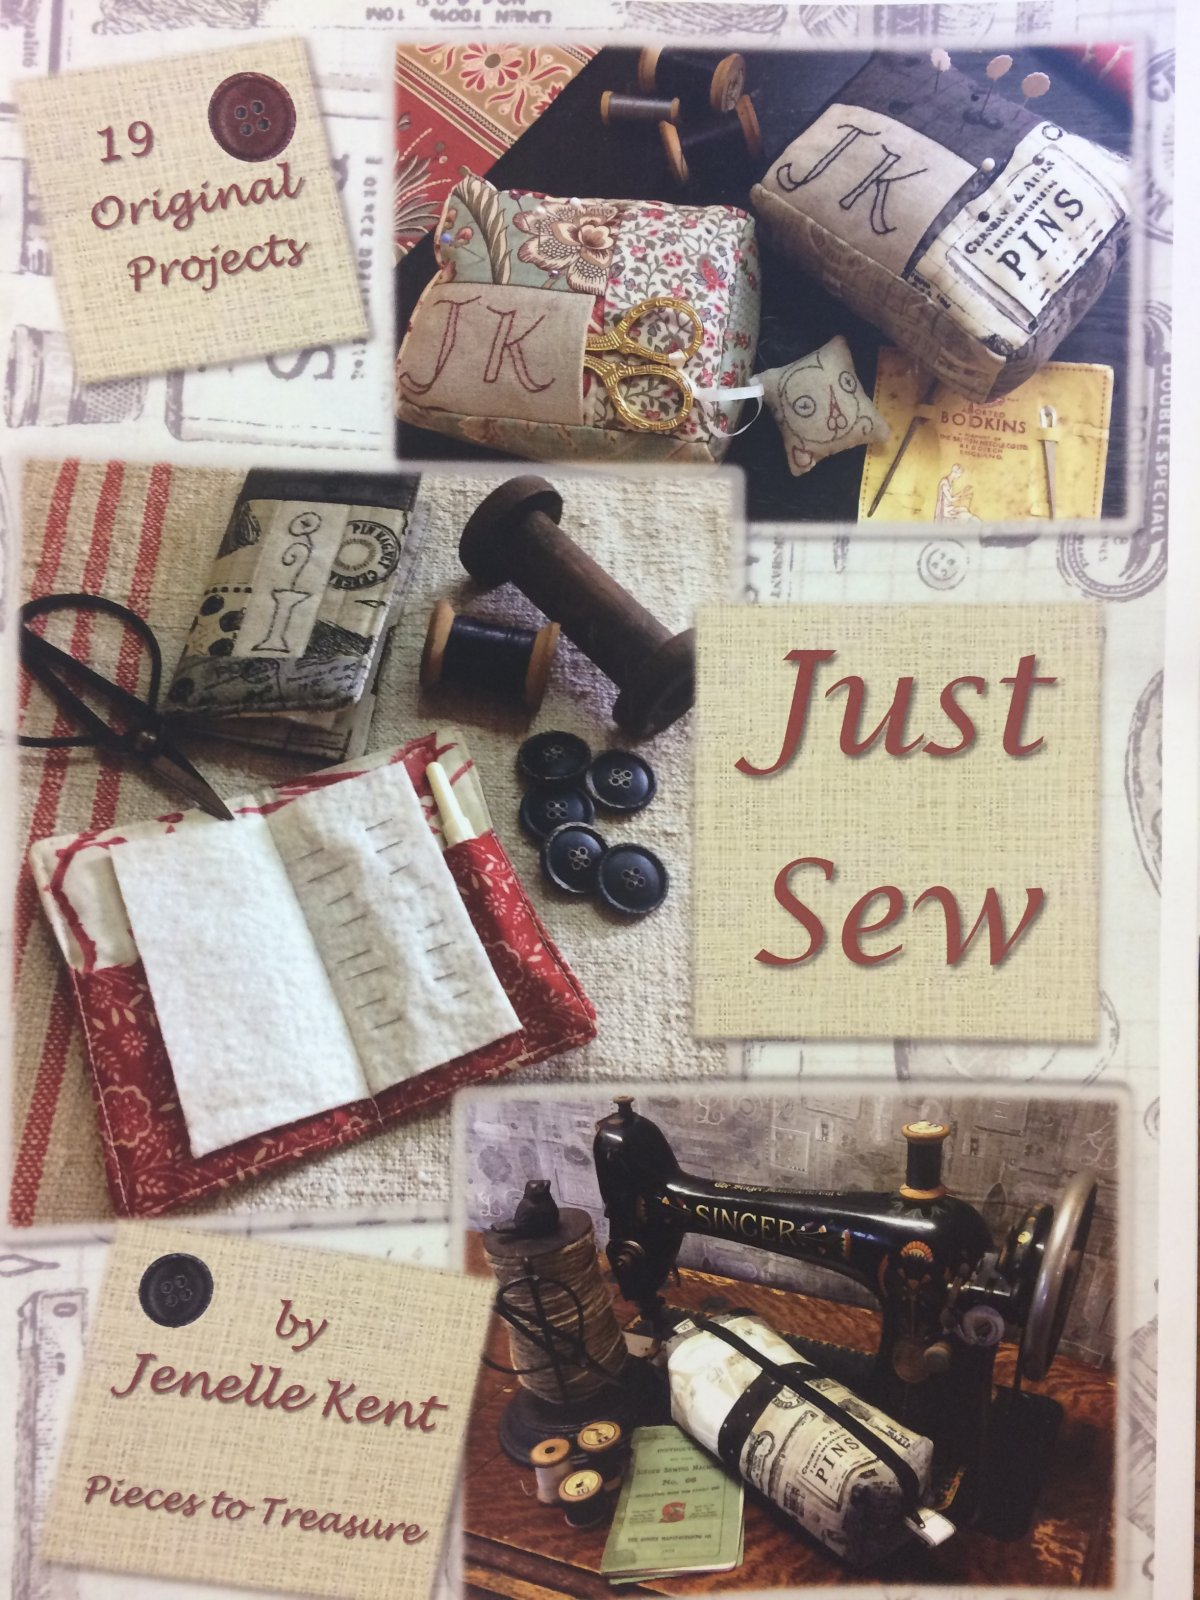 Just Sew by Jenelle Kent